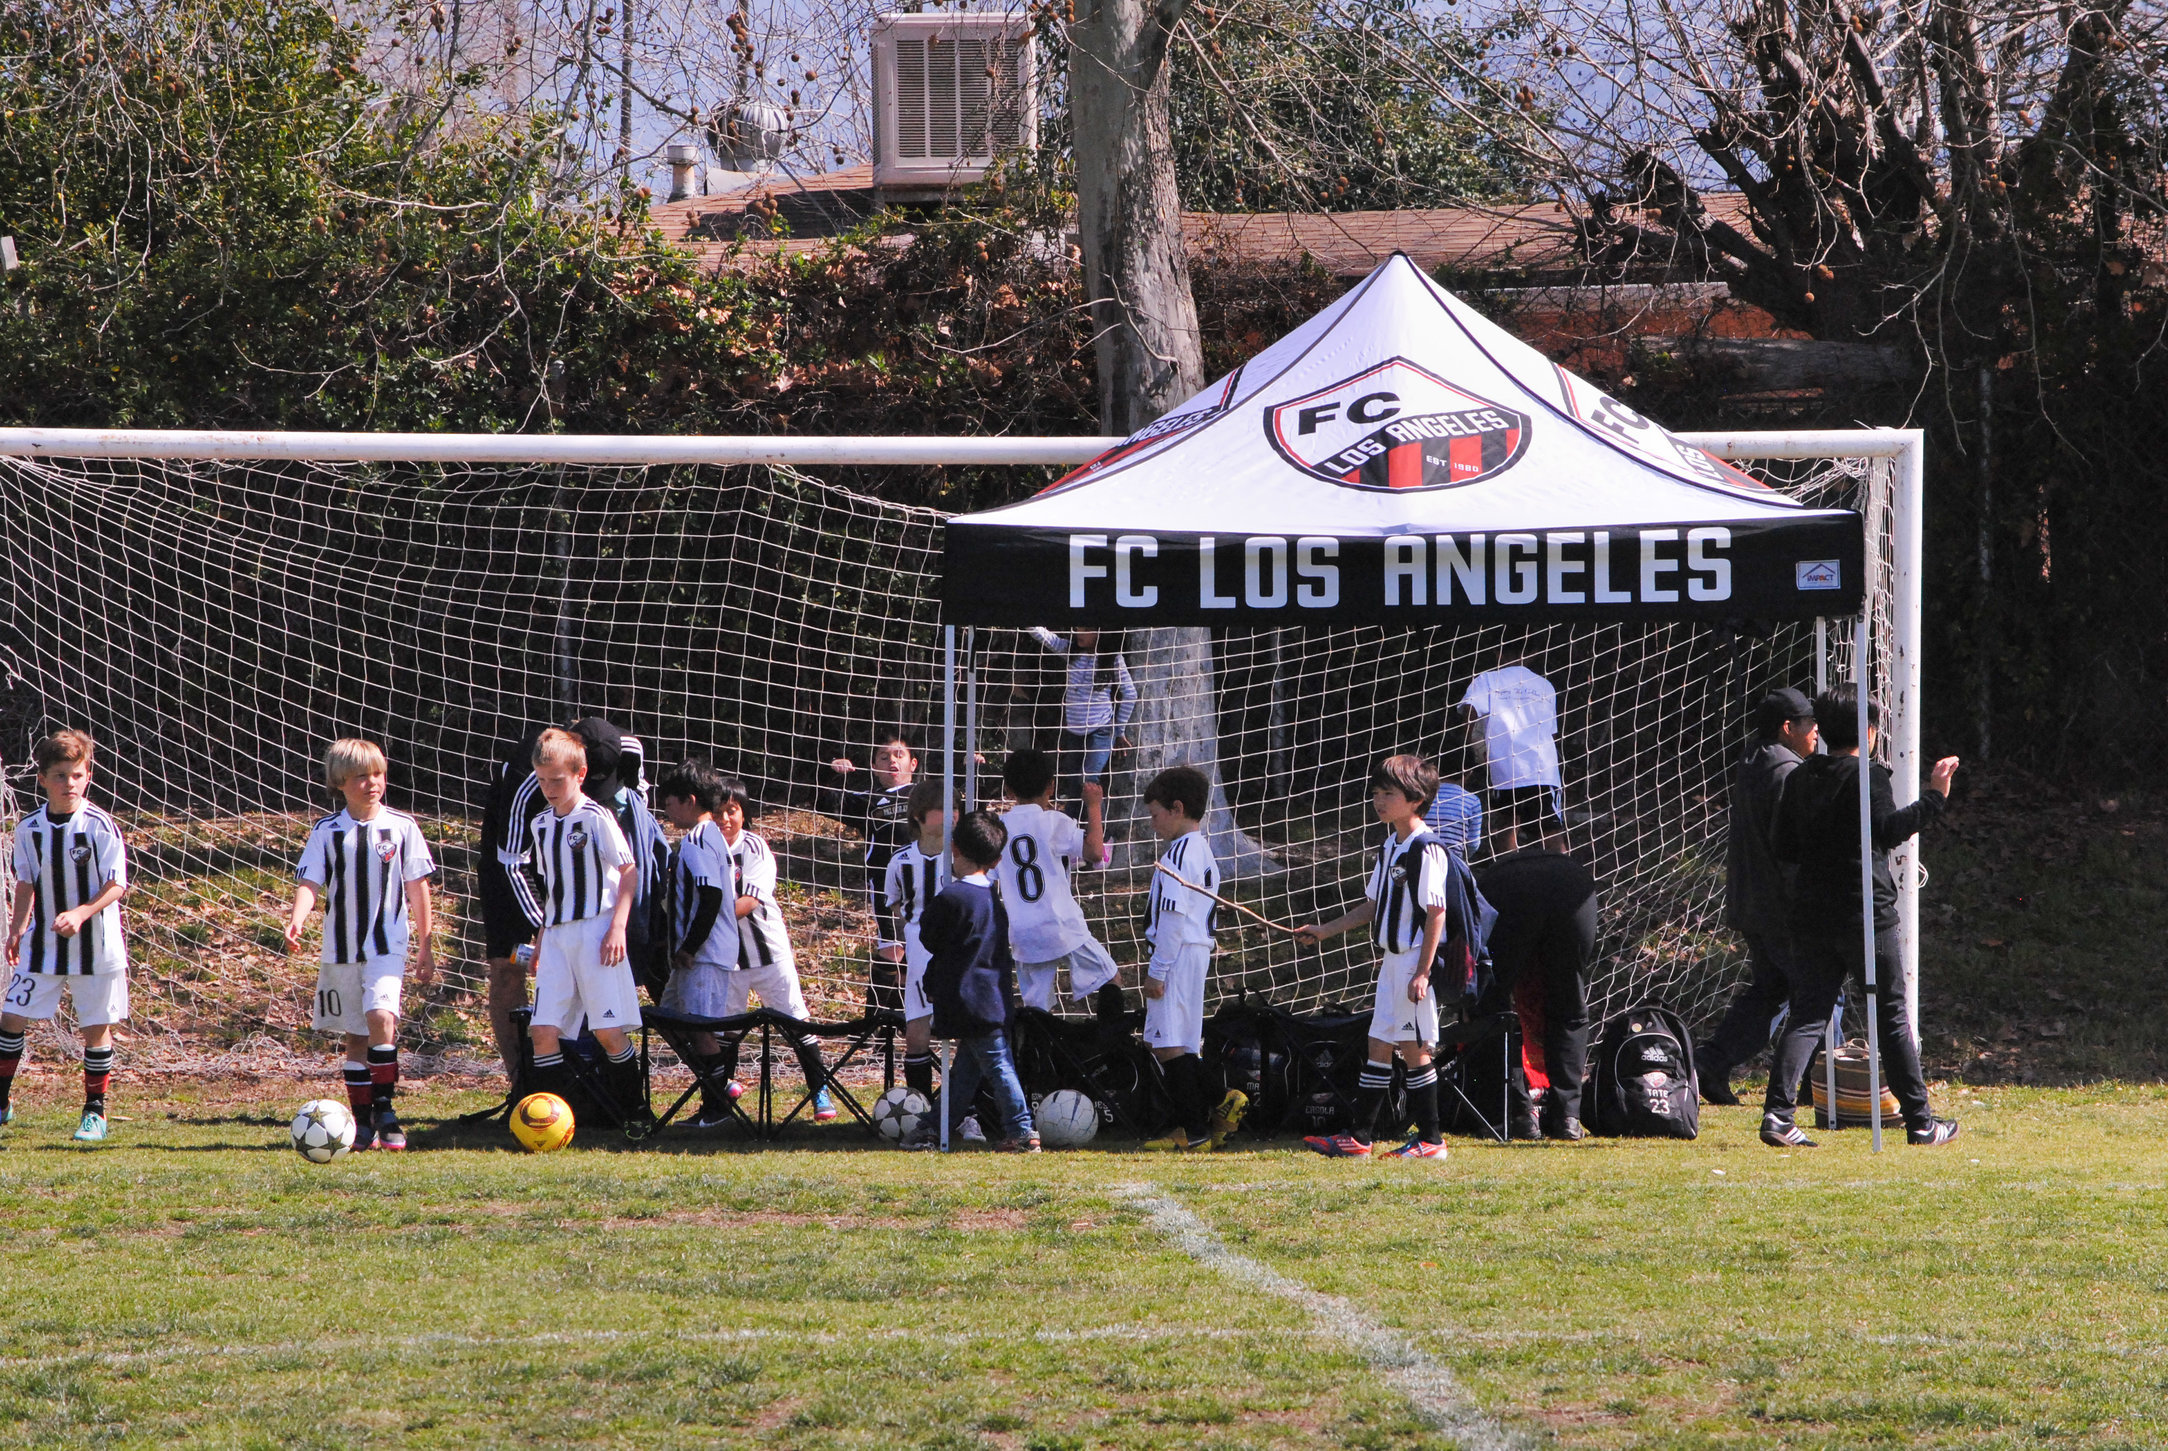 California Cup Finals vs FC Los Angeles